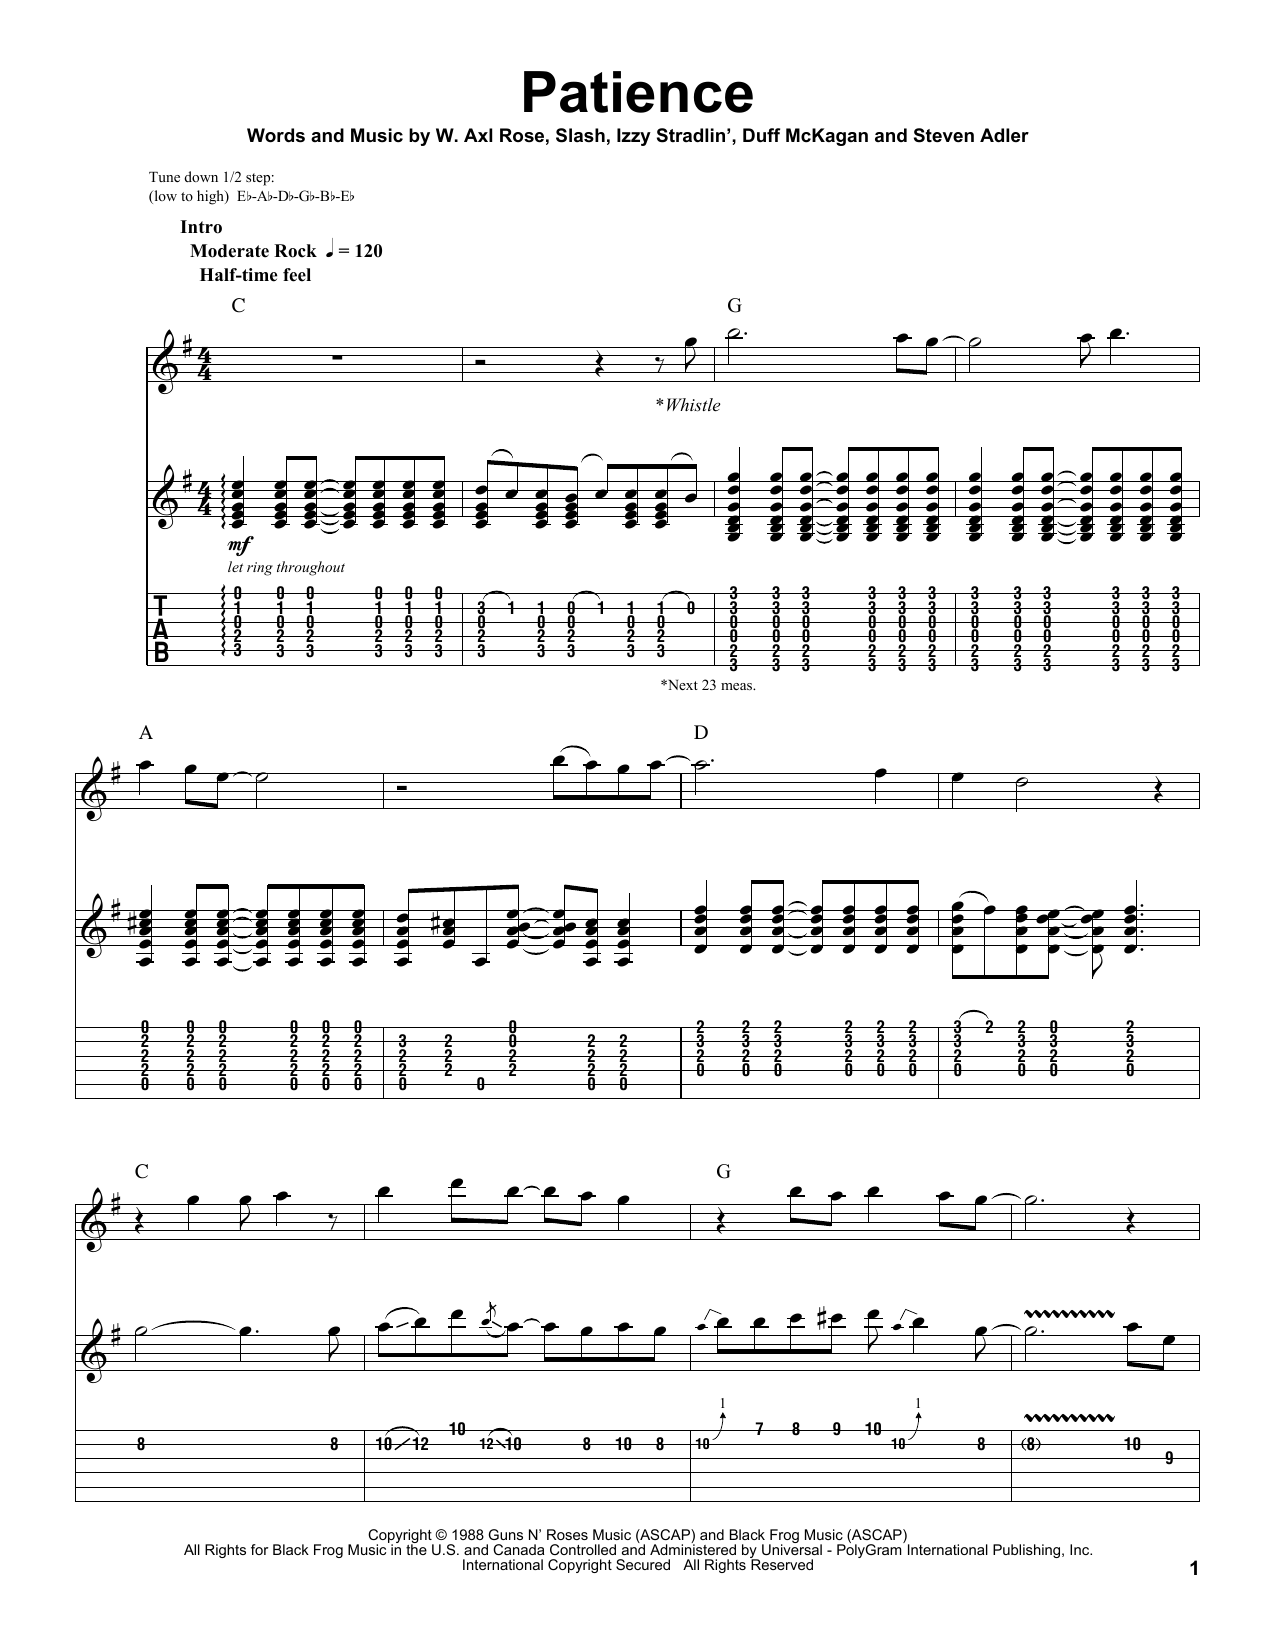 Tablature guitare Patience de Guns N' Roses - Playback Guitare